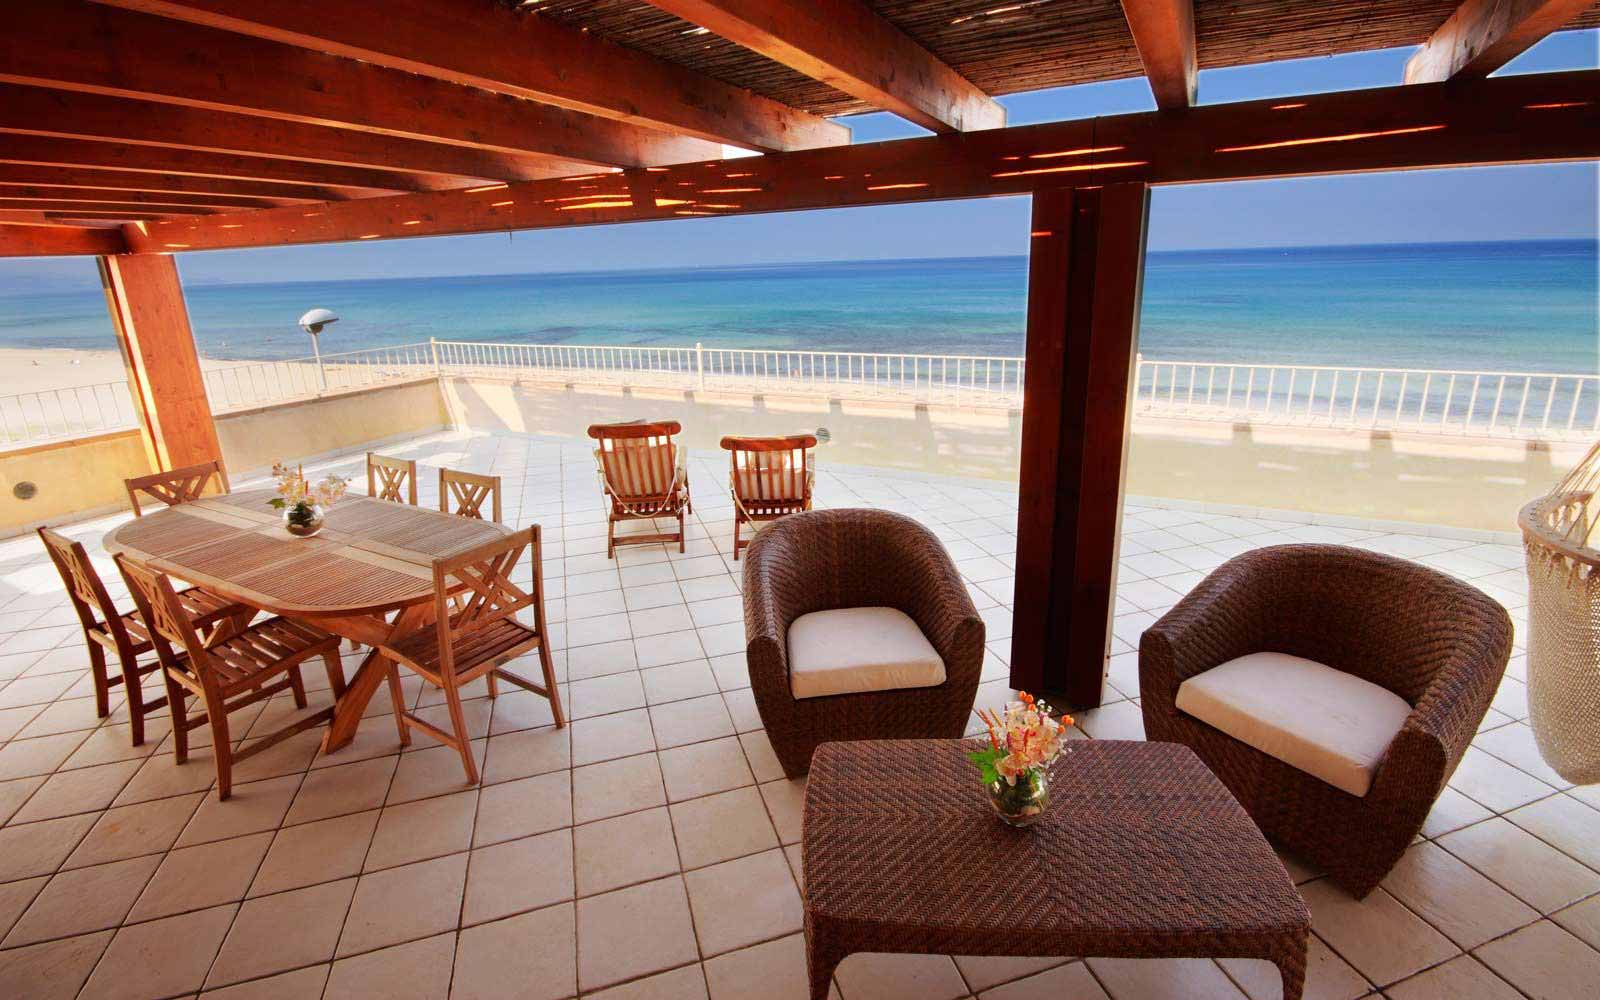 Private terrace overlooking the sea at Hotel Duna Bianca